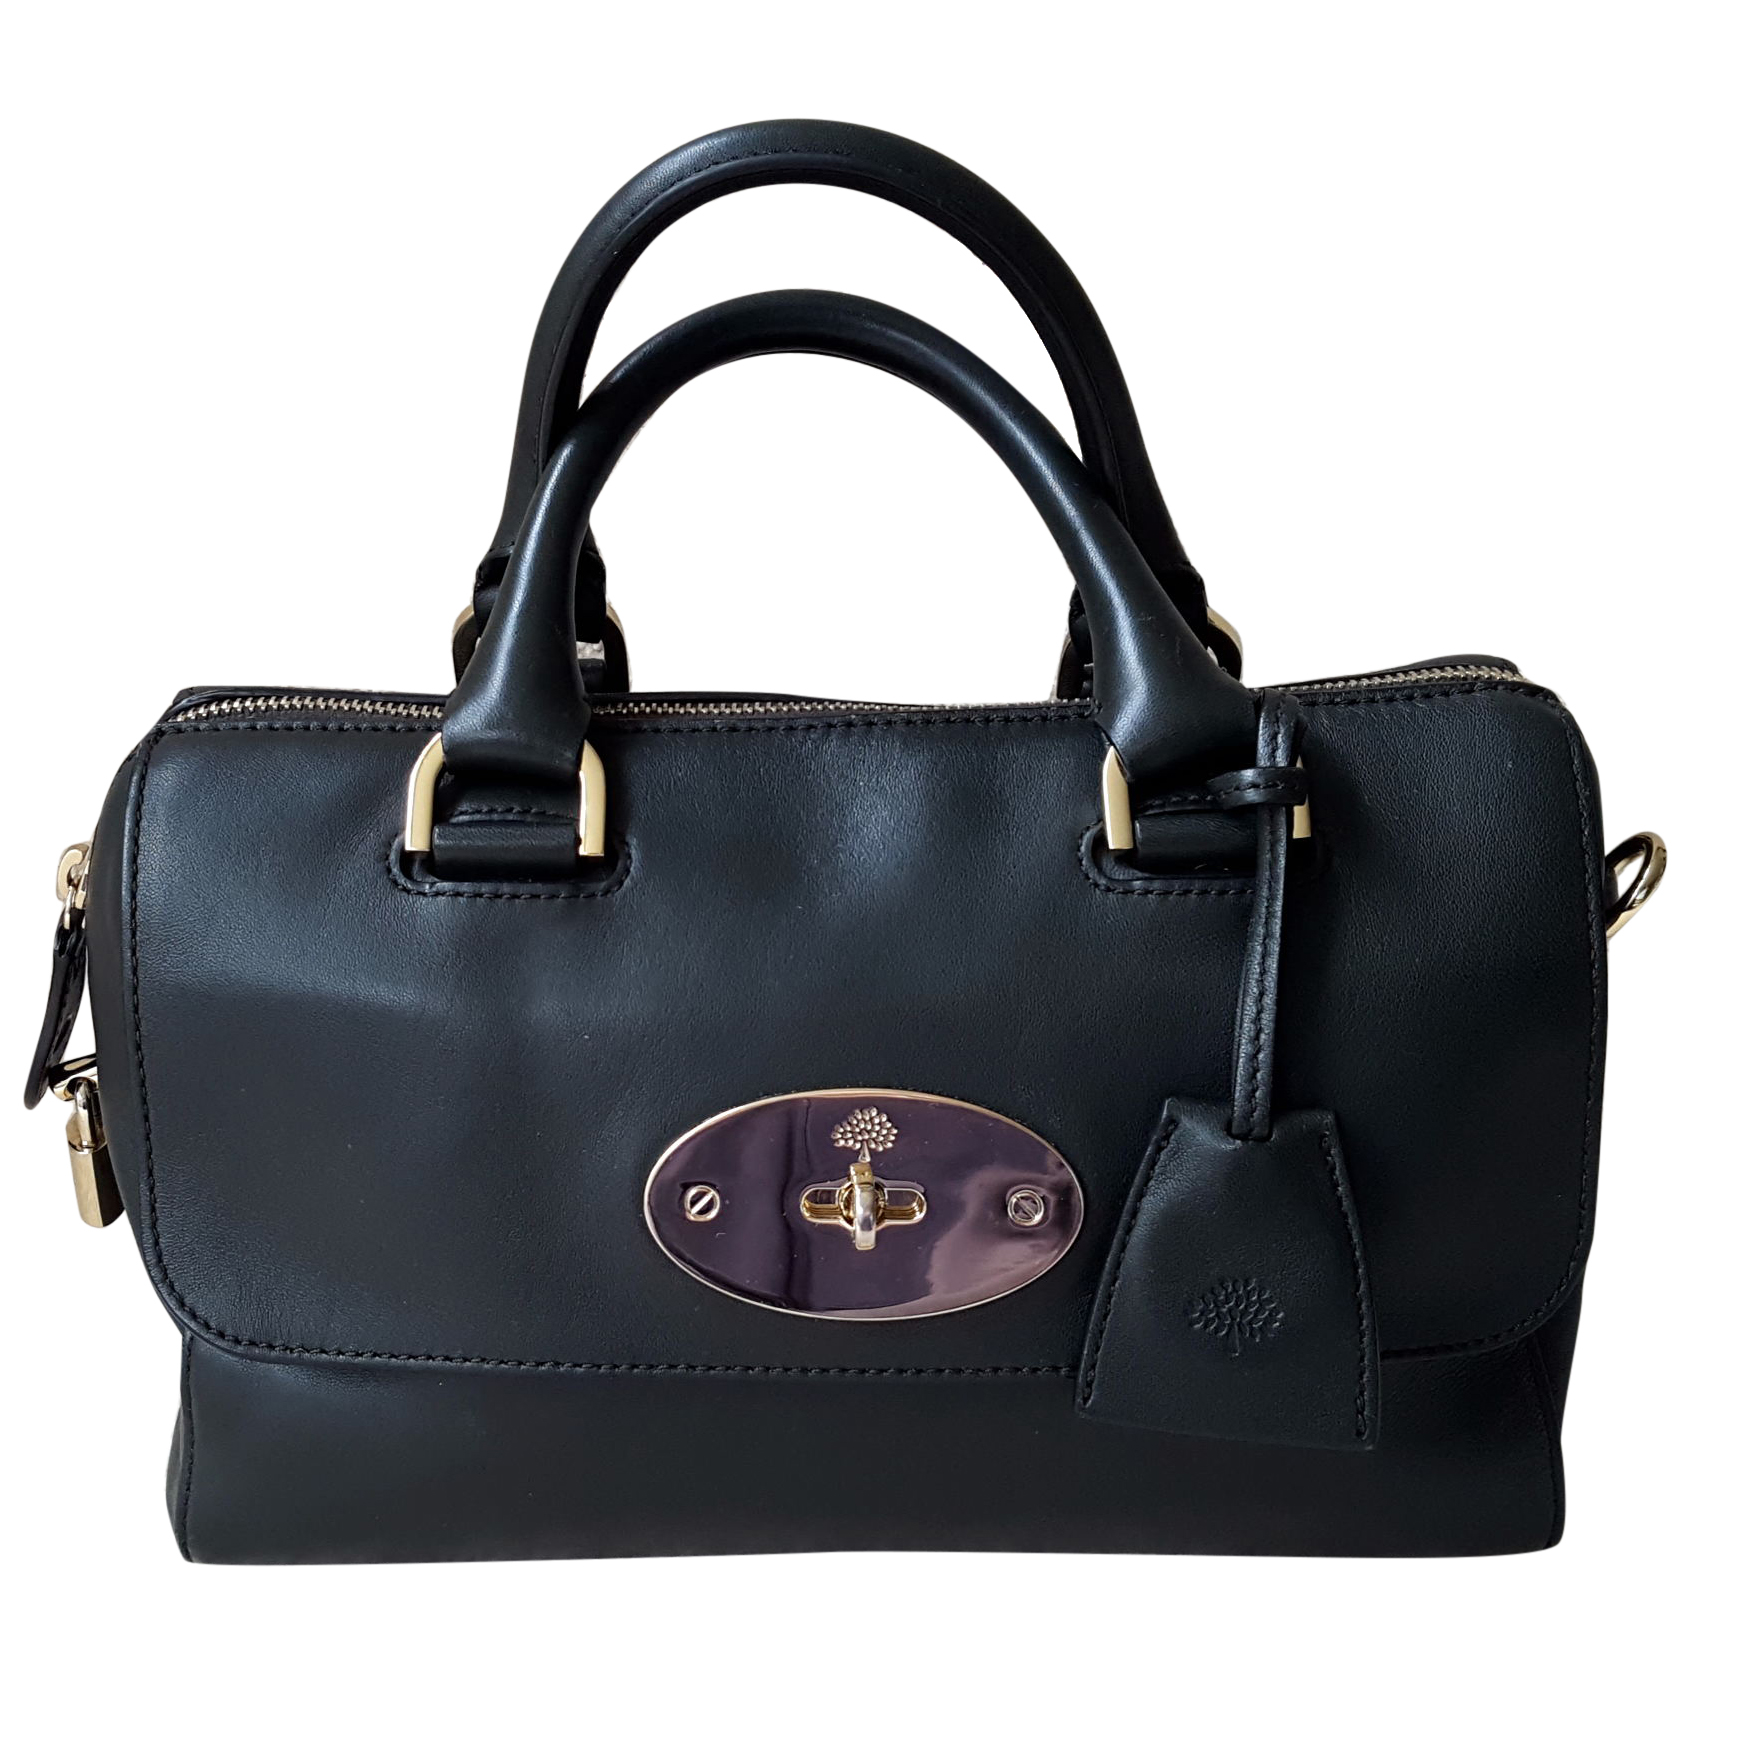 ... best price mulberry small del rey bag hewi london 7fac2 df77a 2ea24f8653704